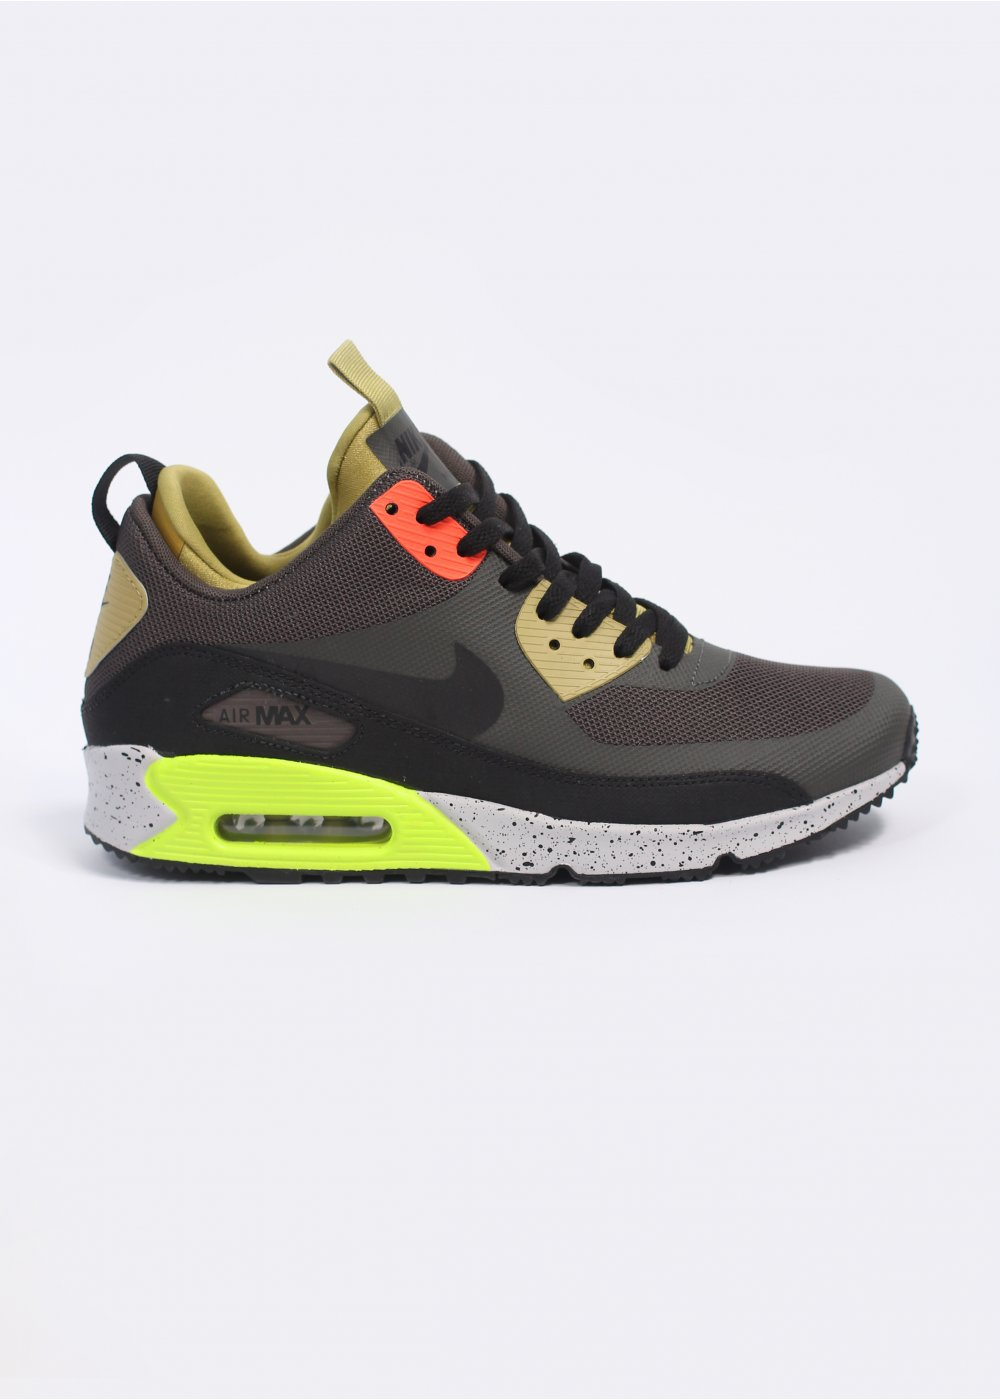 Nike Air Max 90 Mid Sneakerboot